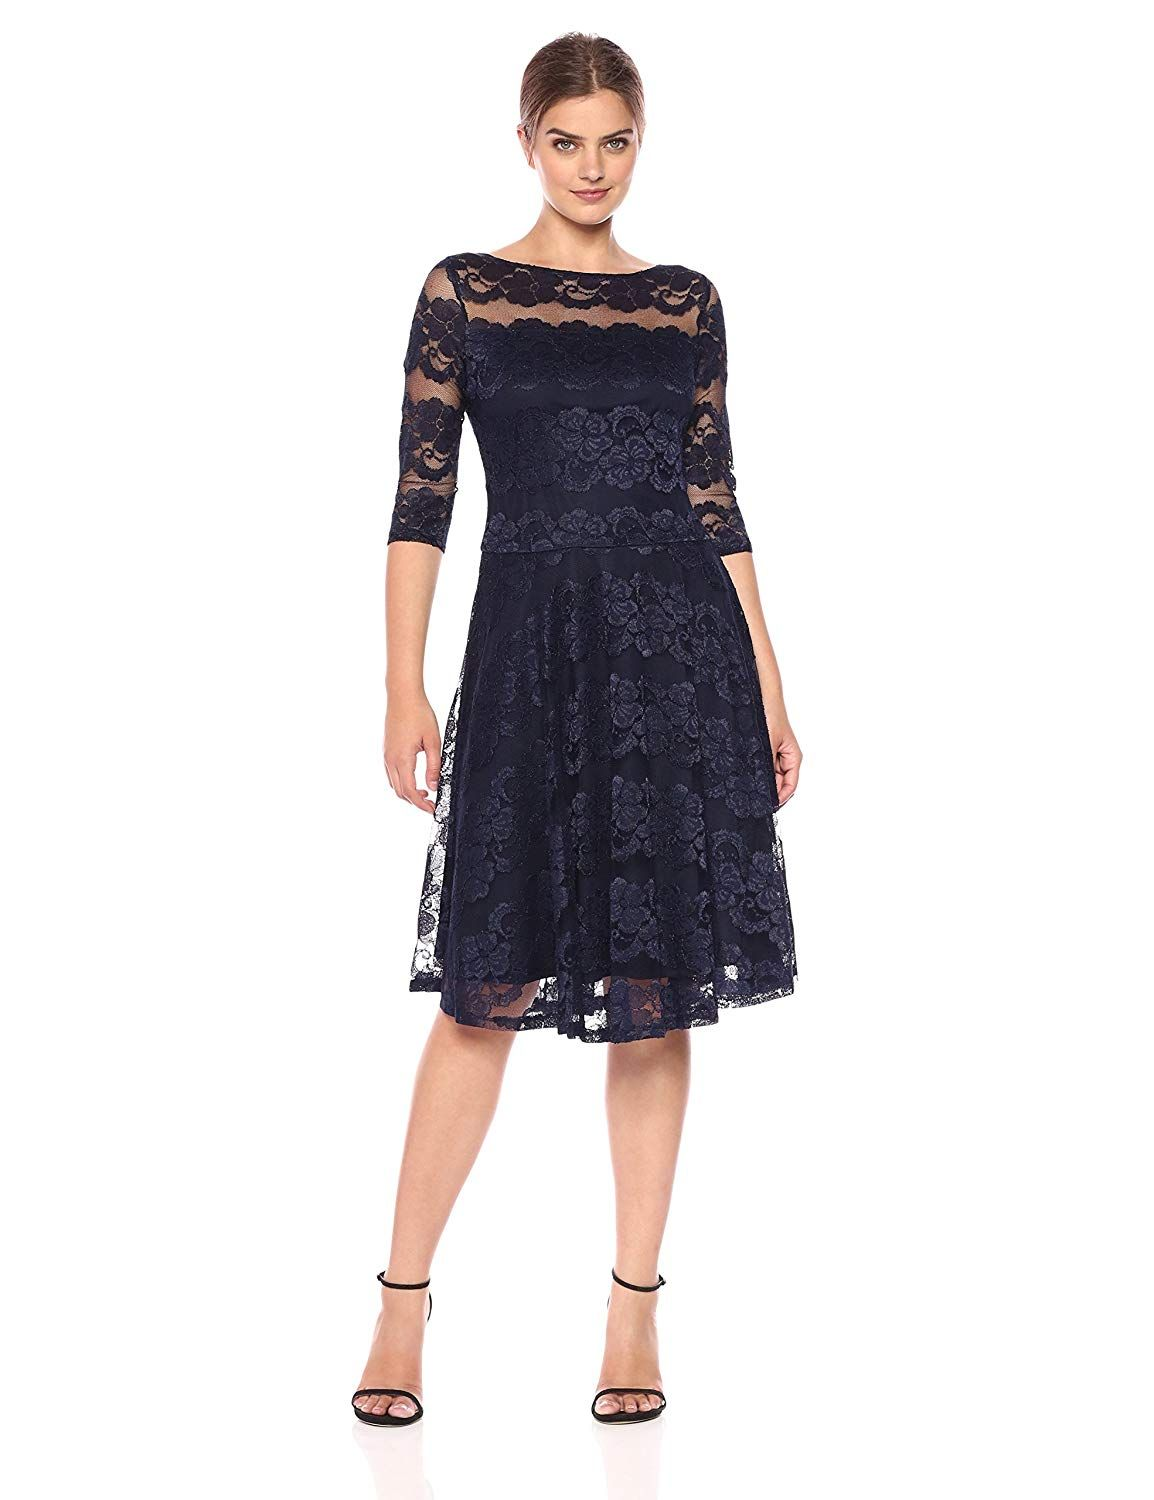 Amazon sangria womens 34 sleeve sequin lace party dress